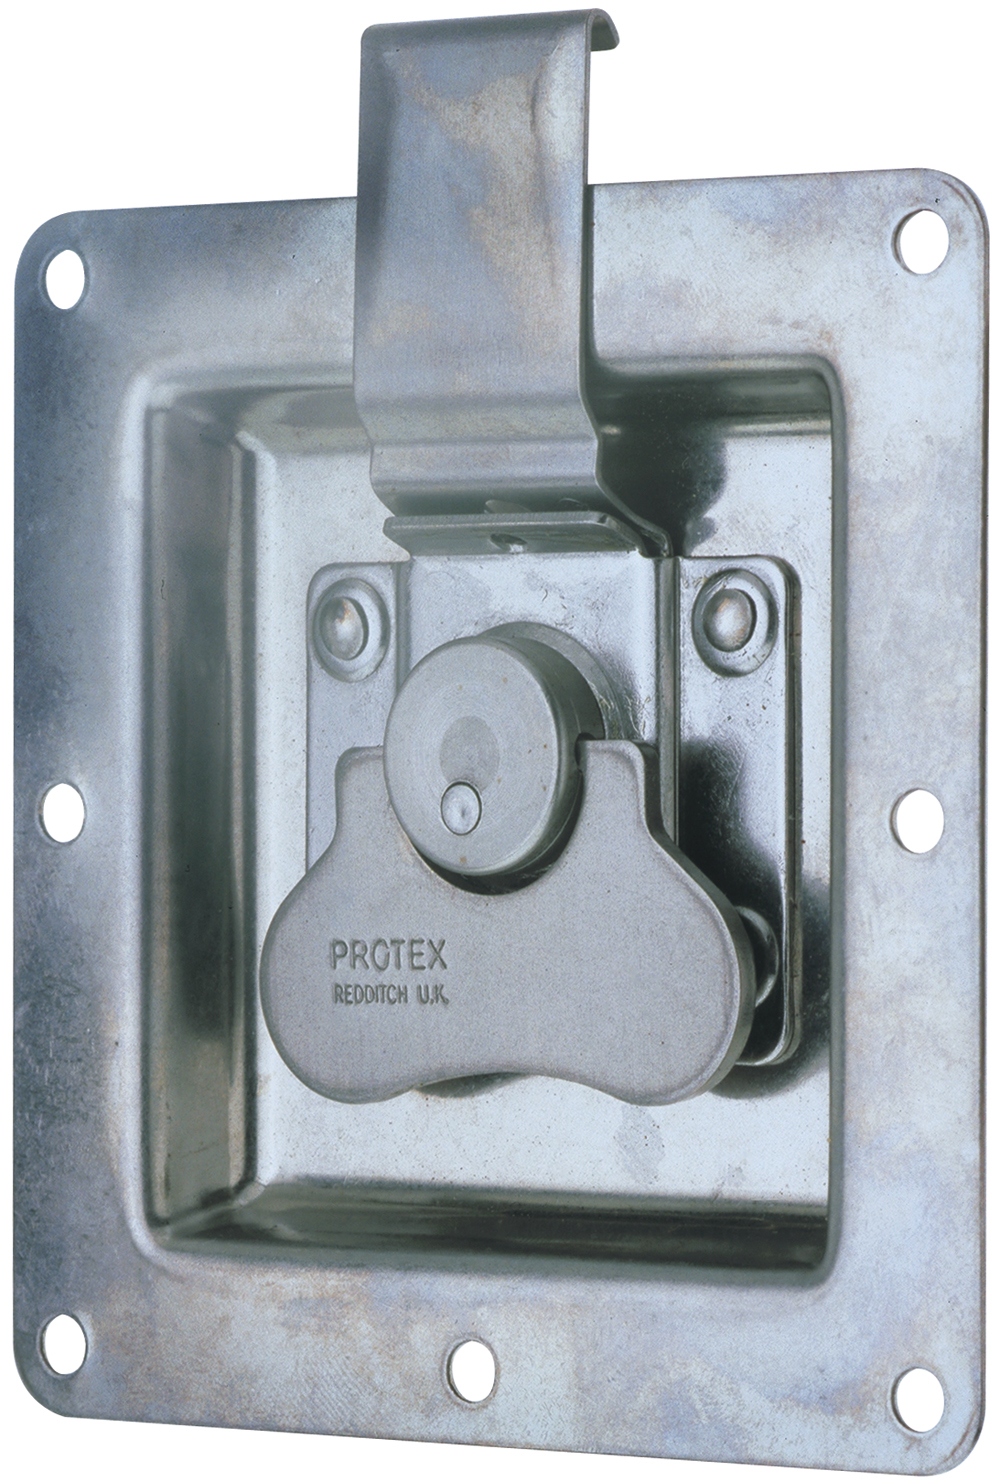 Rotary Turn Latch in Recess Dish Mild Steel Zinc Plate Passivate (Silver Blue)